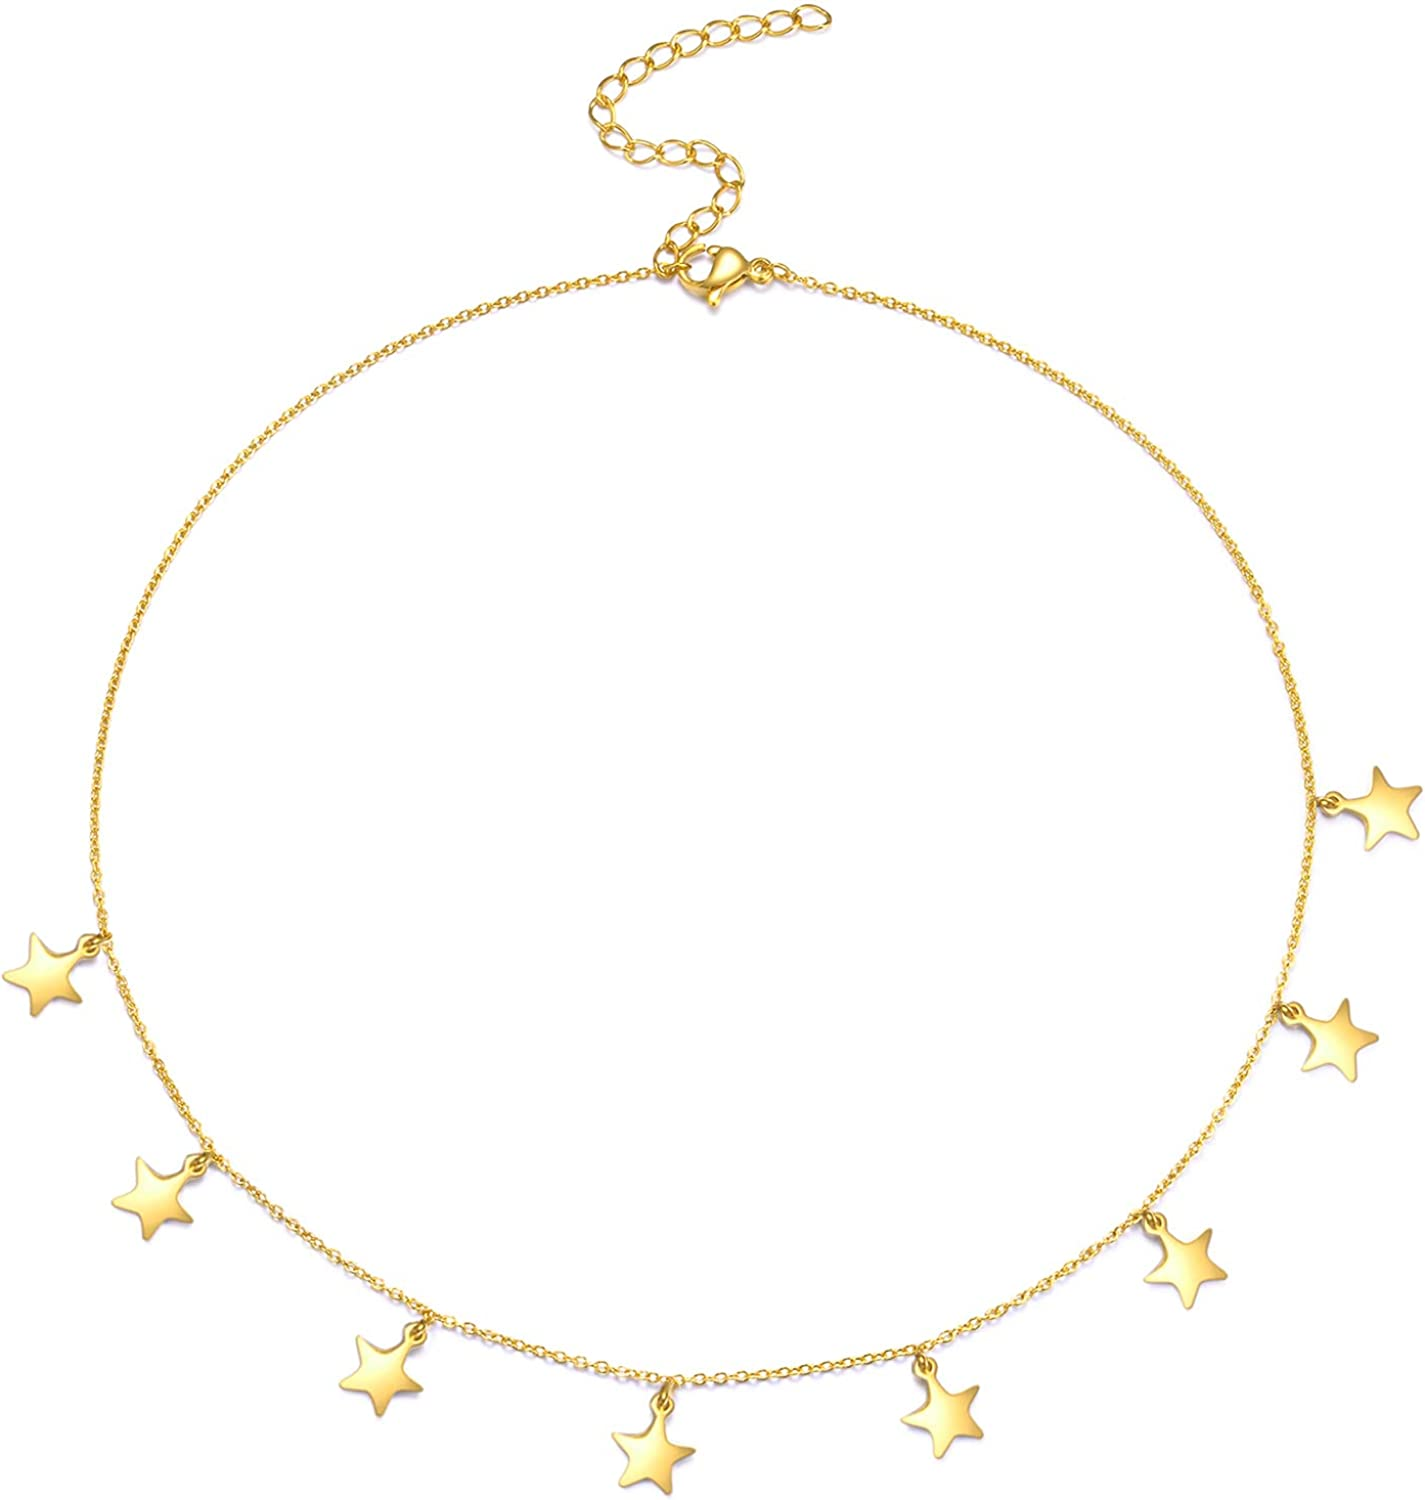 Minimalist Stainless Steel Necklace 18K Gold Plated Choker Fashion Handmade Pendant Chain Valentines Day Gifts for Women Thin Bead Heart Star Ball Necklace